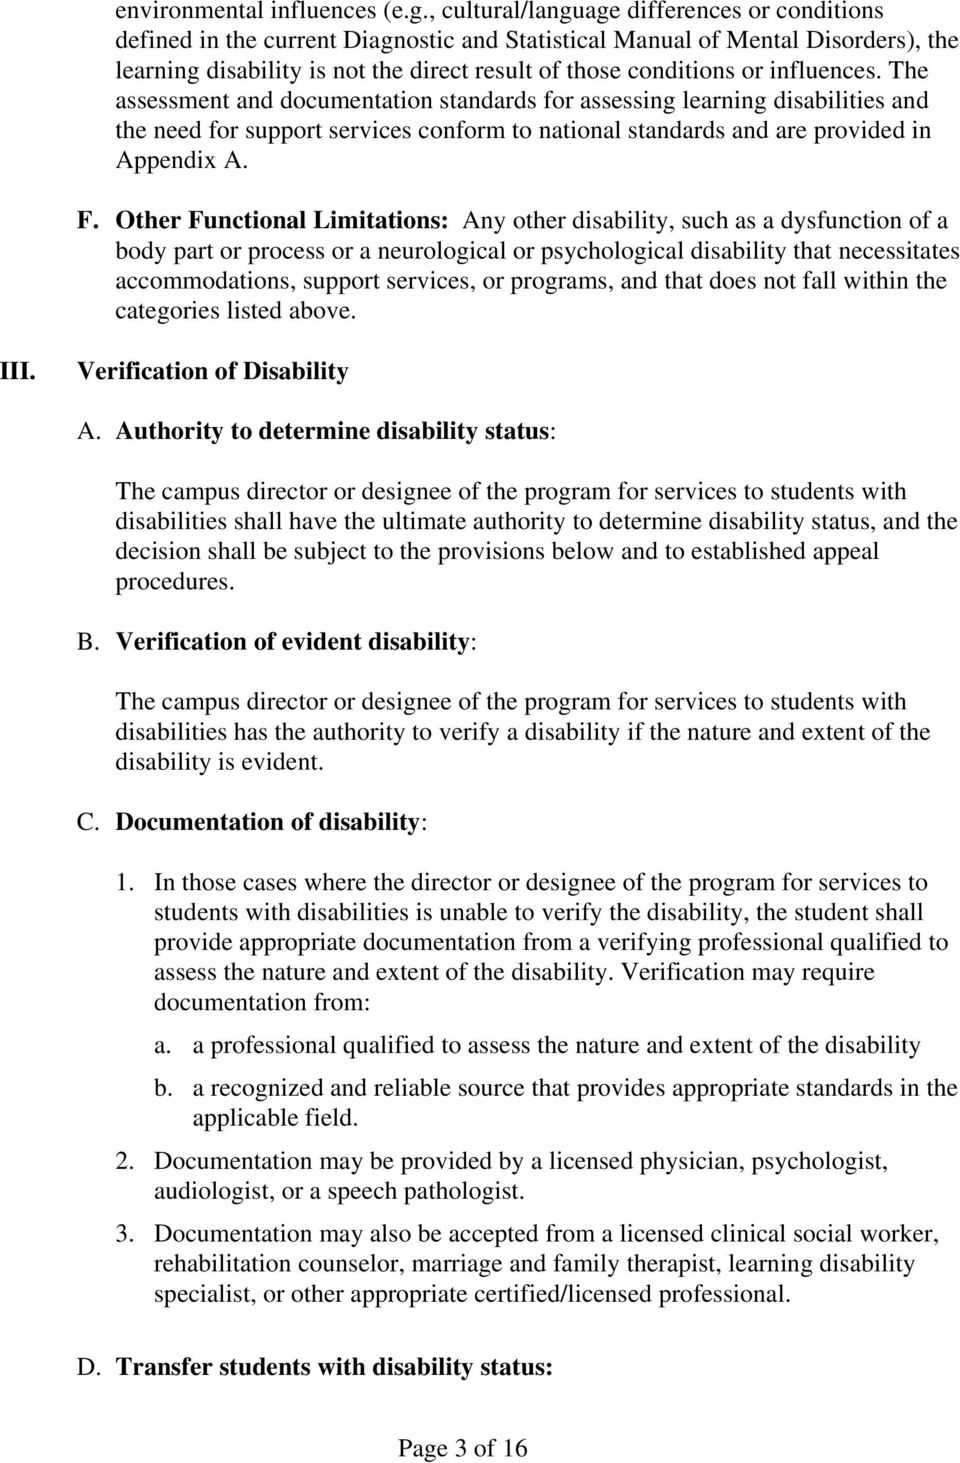 influences. The assessment and documentation standards for assessing learning disabilities and the need for support services conform to national standards and are provided in Appendix A. F.